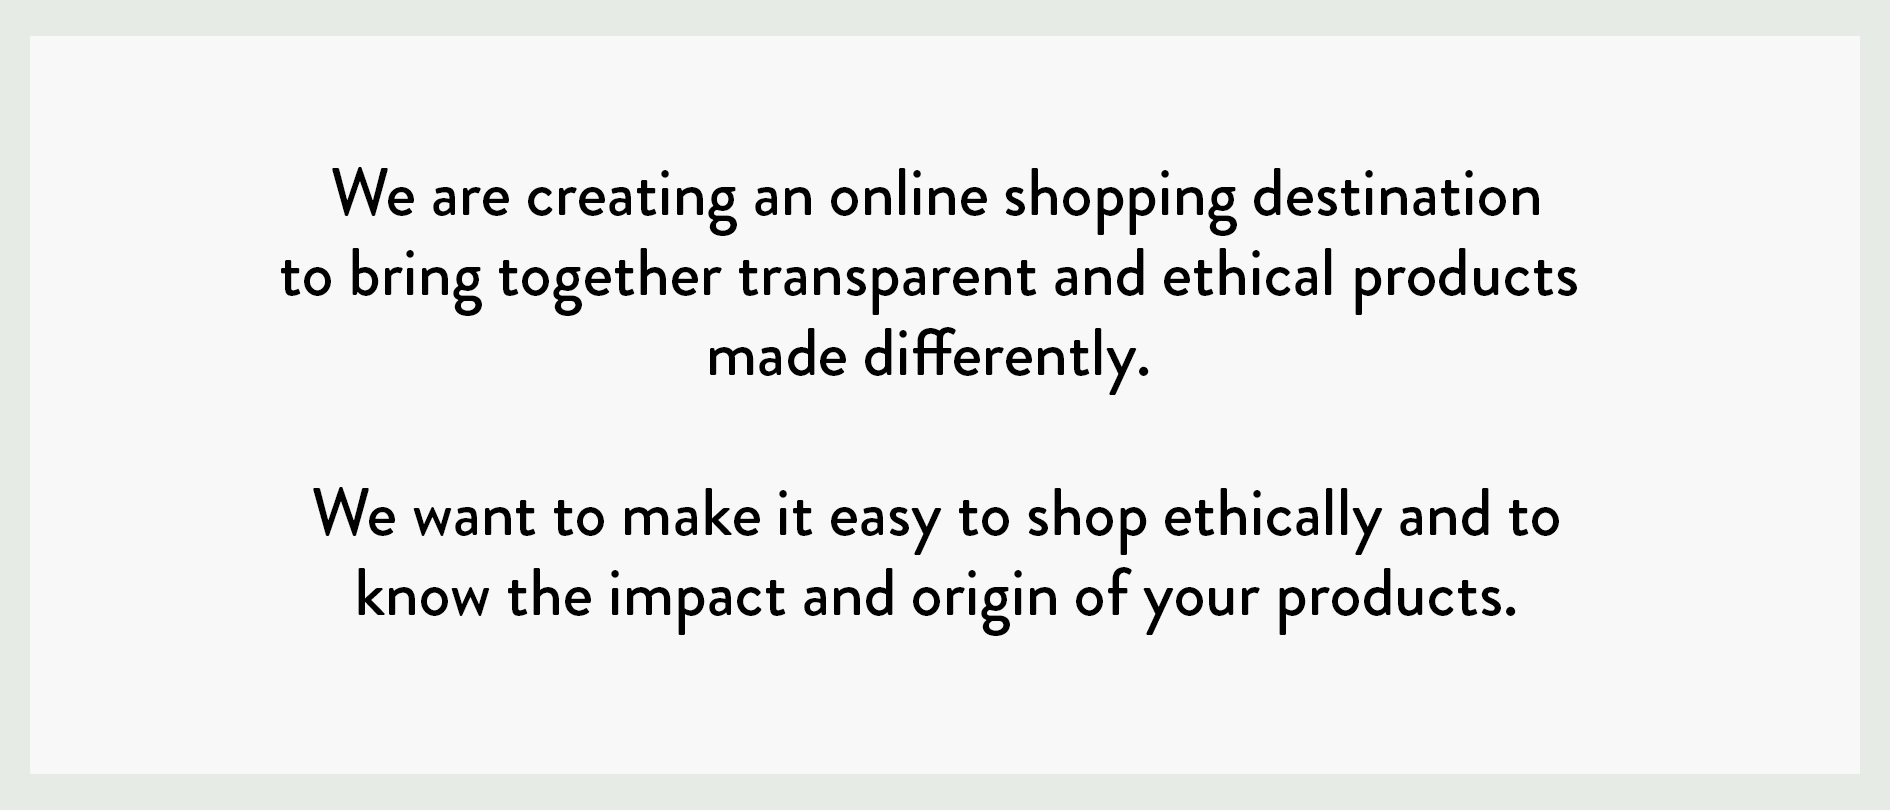 Know The Origin: Ethical & Transparent Marketplace - a